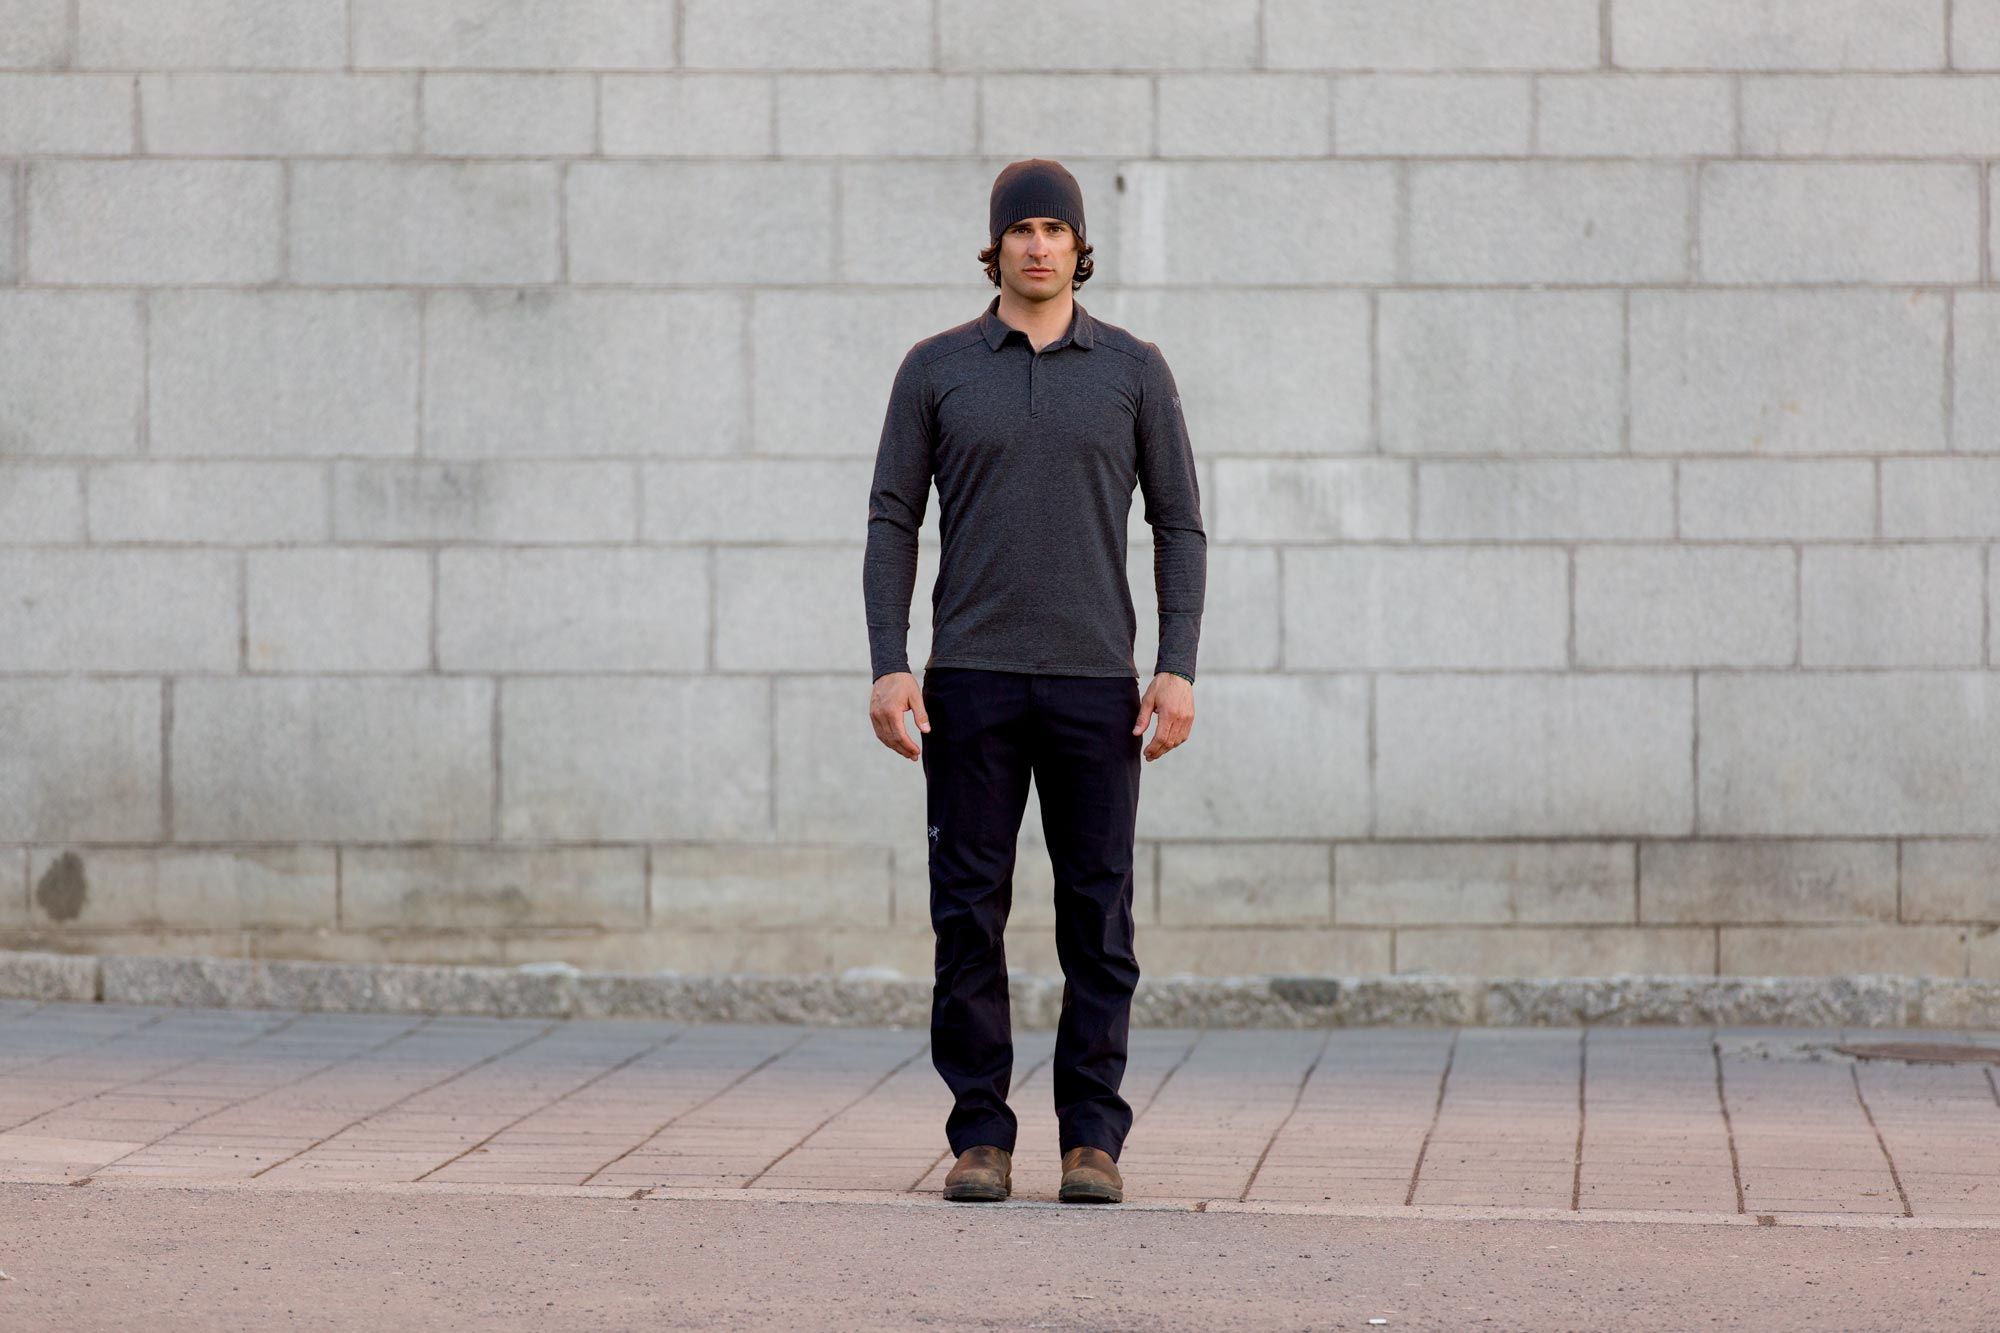 ccaaf113ac Men's Captive Long Sleeve Polo Shirt by Arc'teryx: A long sleeved autumn  weight polo combines moisture wicking performance fabric with a clean  Arc'teryx ...